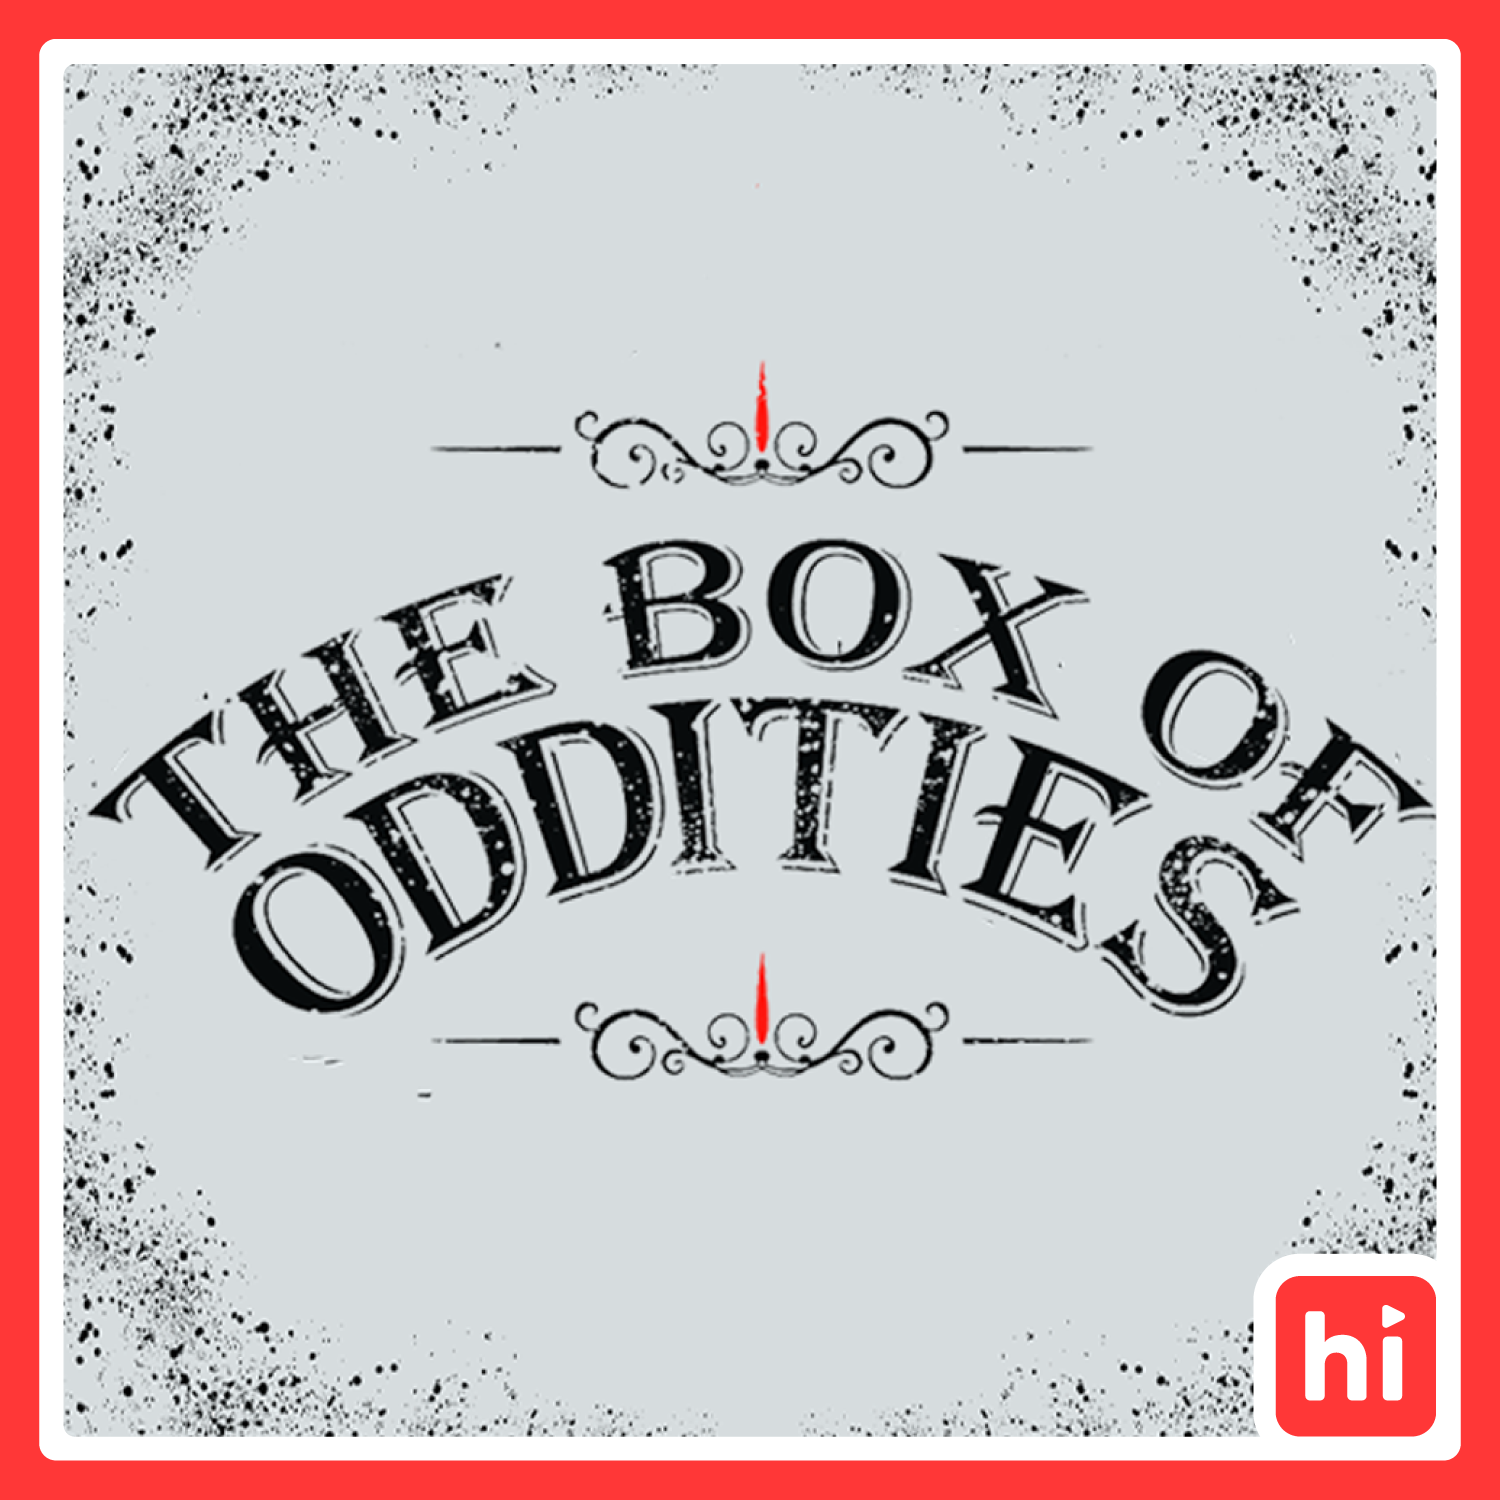 BOX098: Beardy Was From a Different Dimension